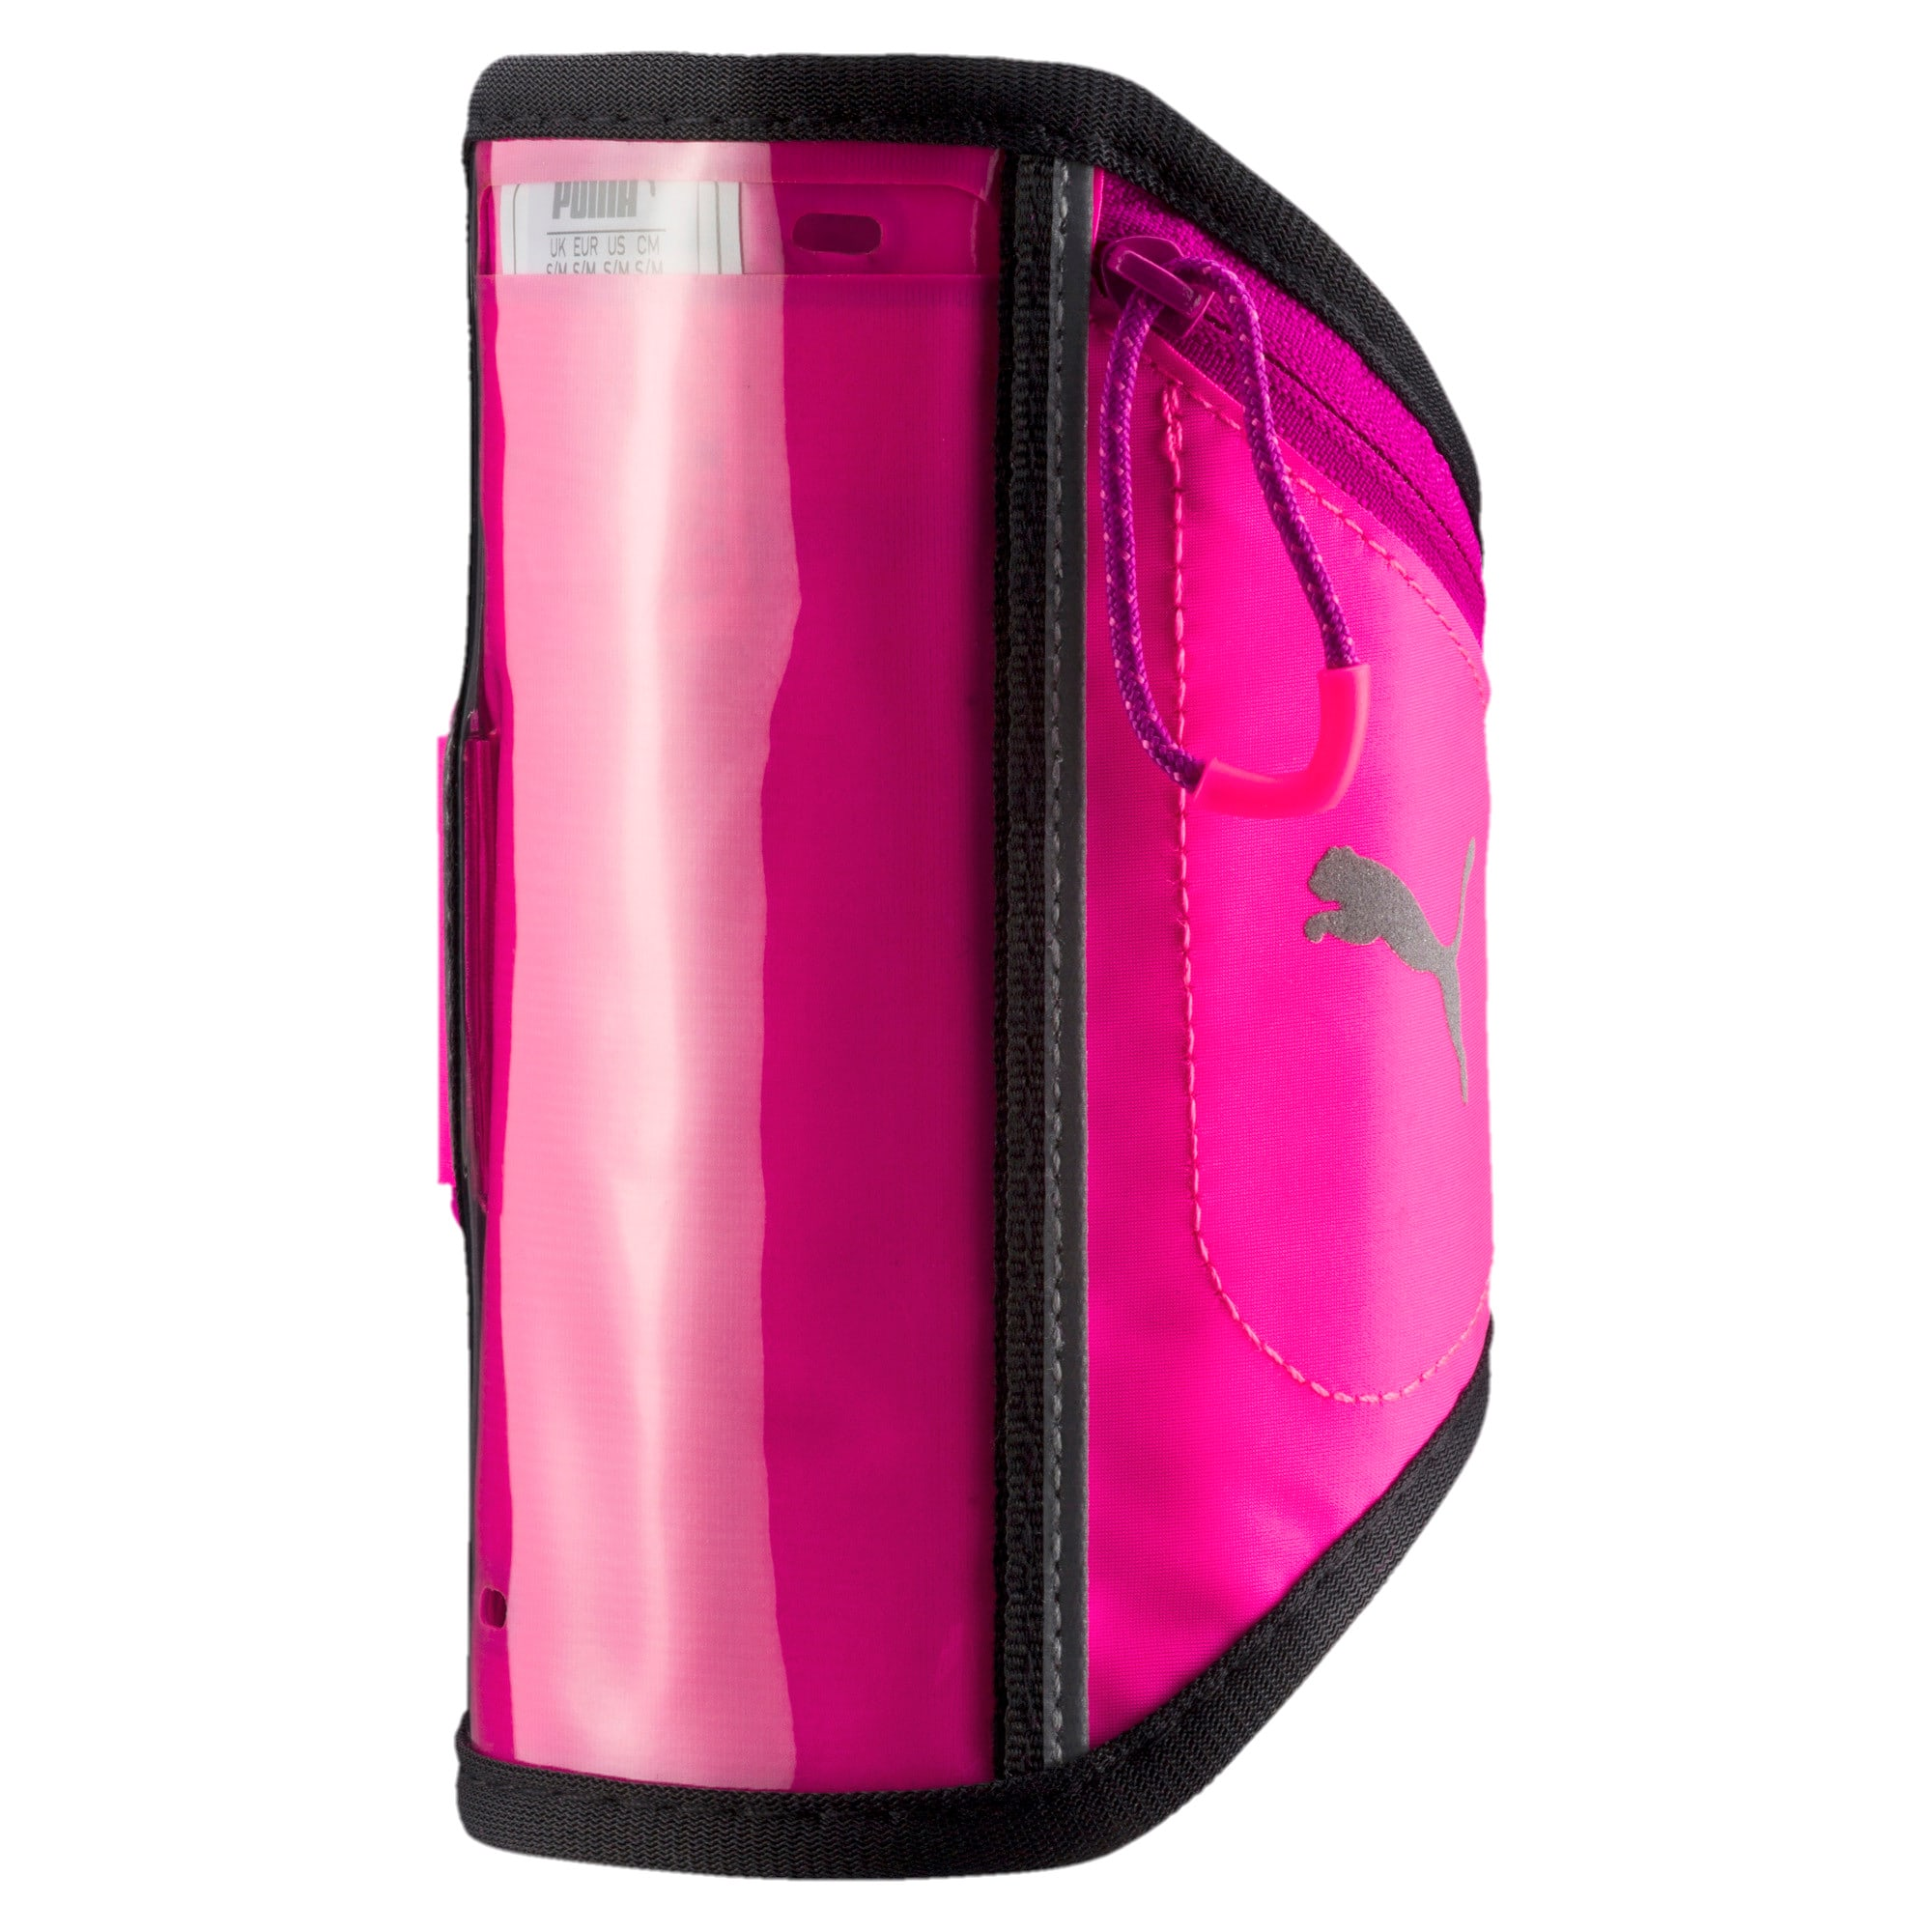 Thumbnail 1 of Running iPhone Arm Pocket, KNOCKOUT PINK-ULTRA MAGENTA, medium-IND